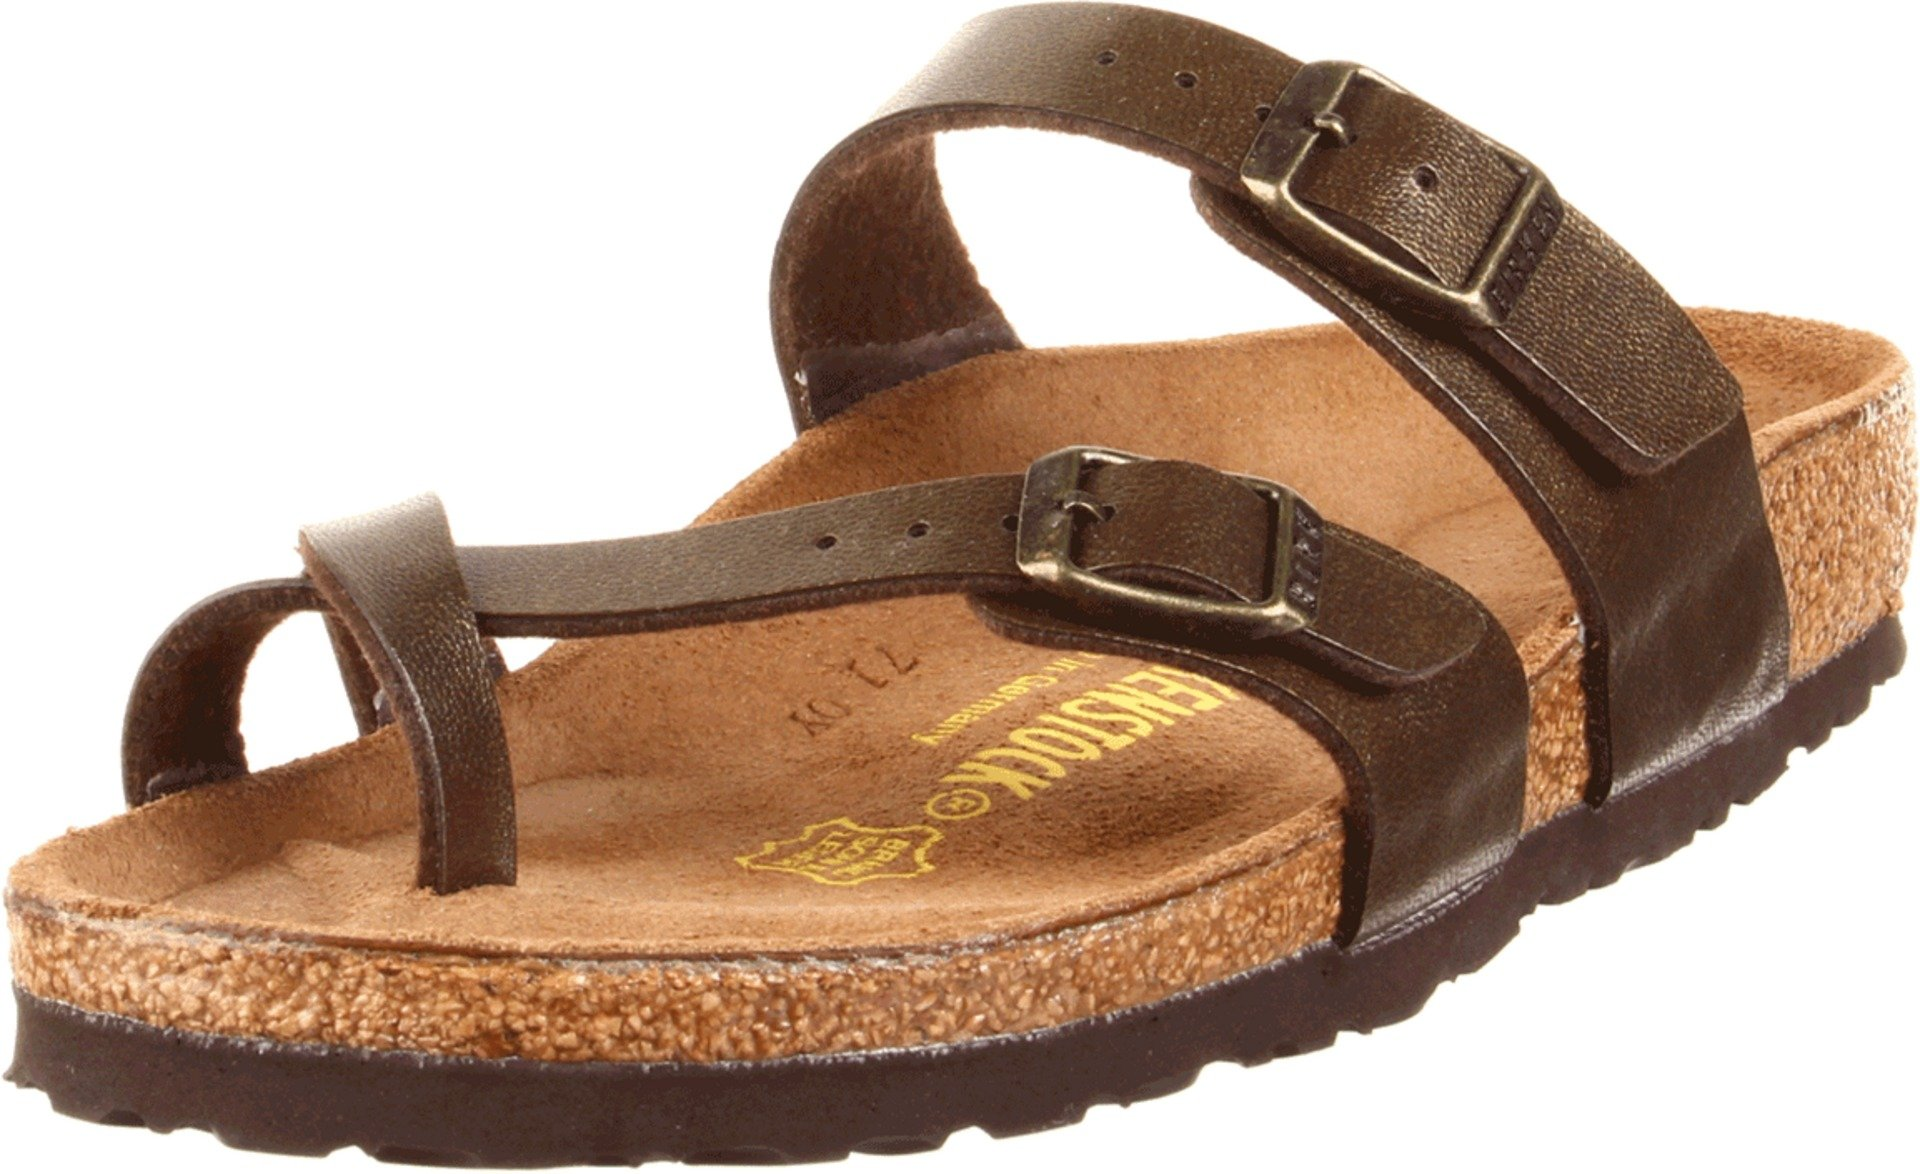 Birkenstock Mayari Sandal,Golden Brown,37 N EU